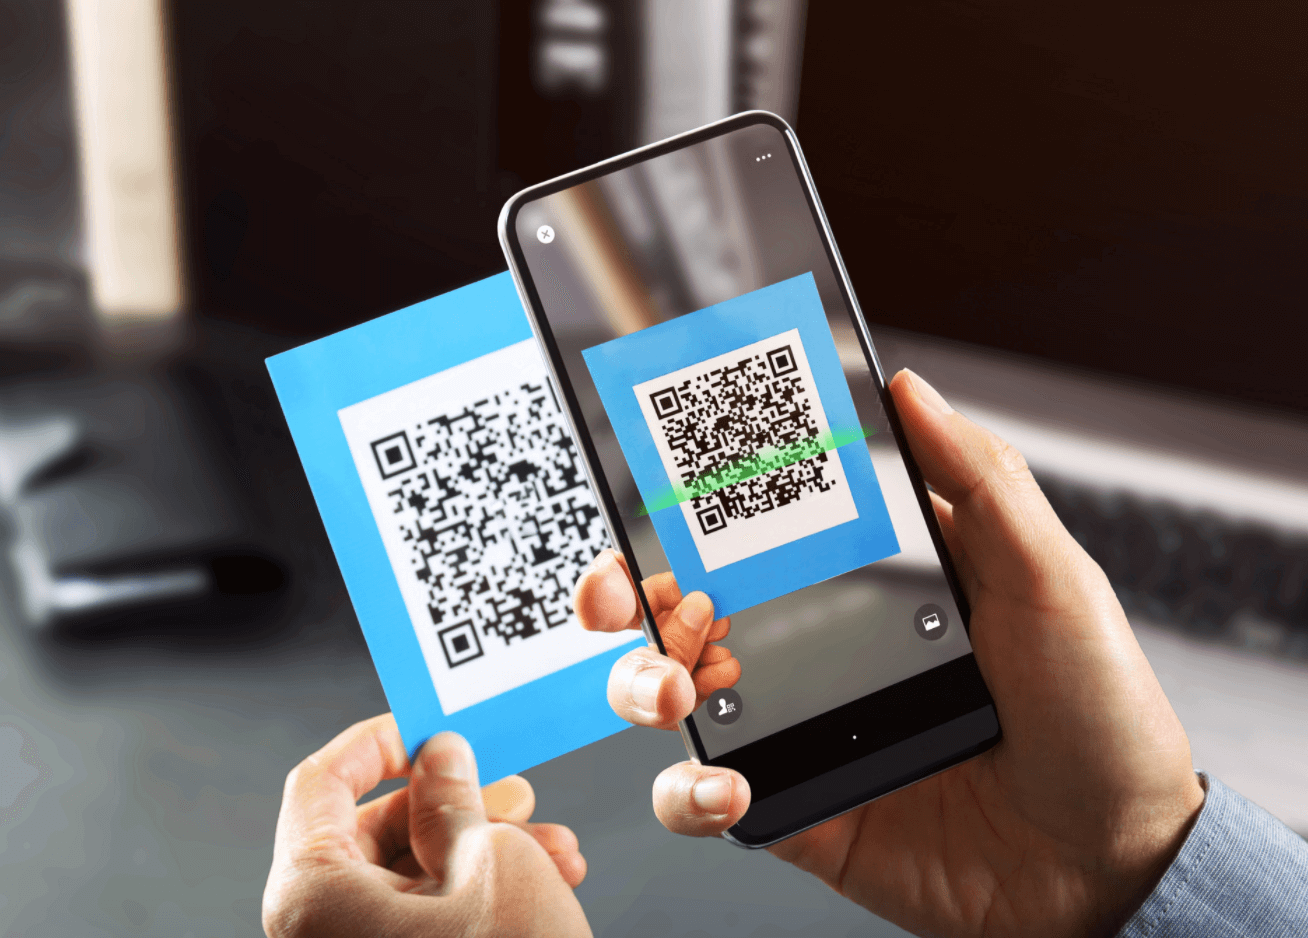 How Exactly Does QR Code Technology Work?